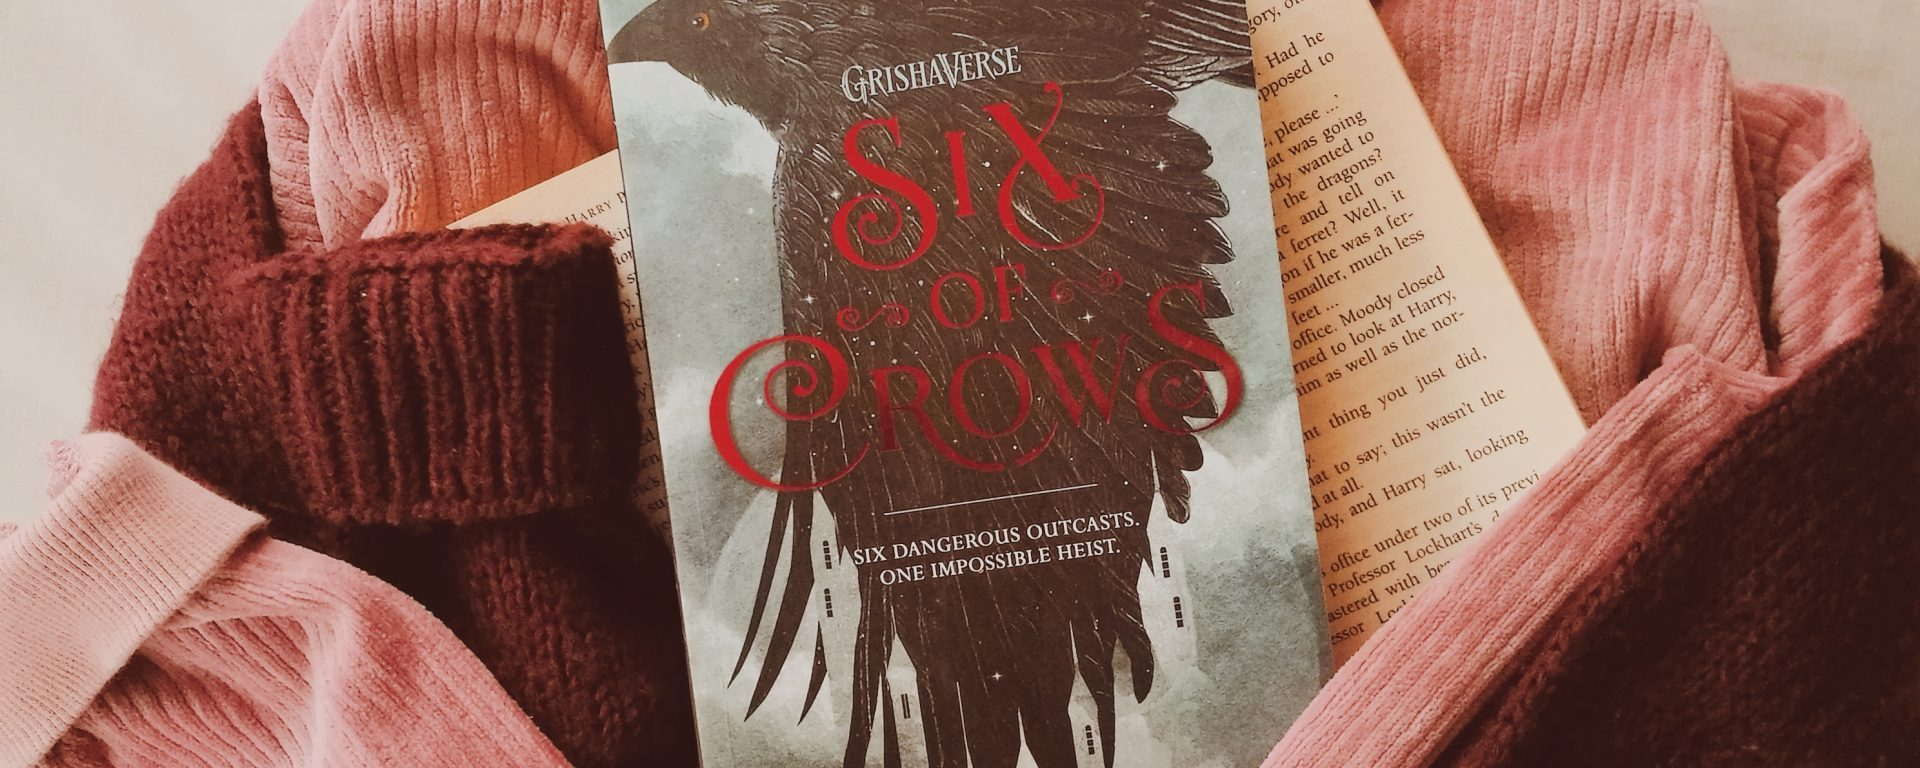 six of crows book with jumpers/ sweaters around it and the quote no mourners no funerals above for this review.